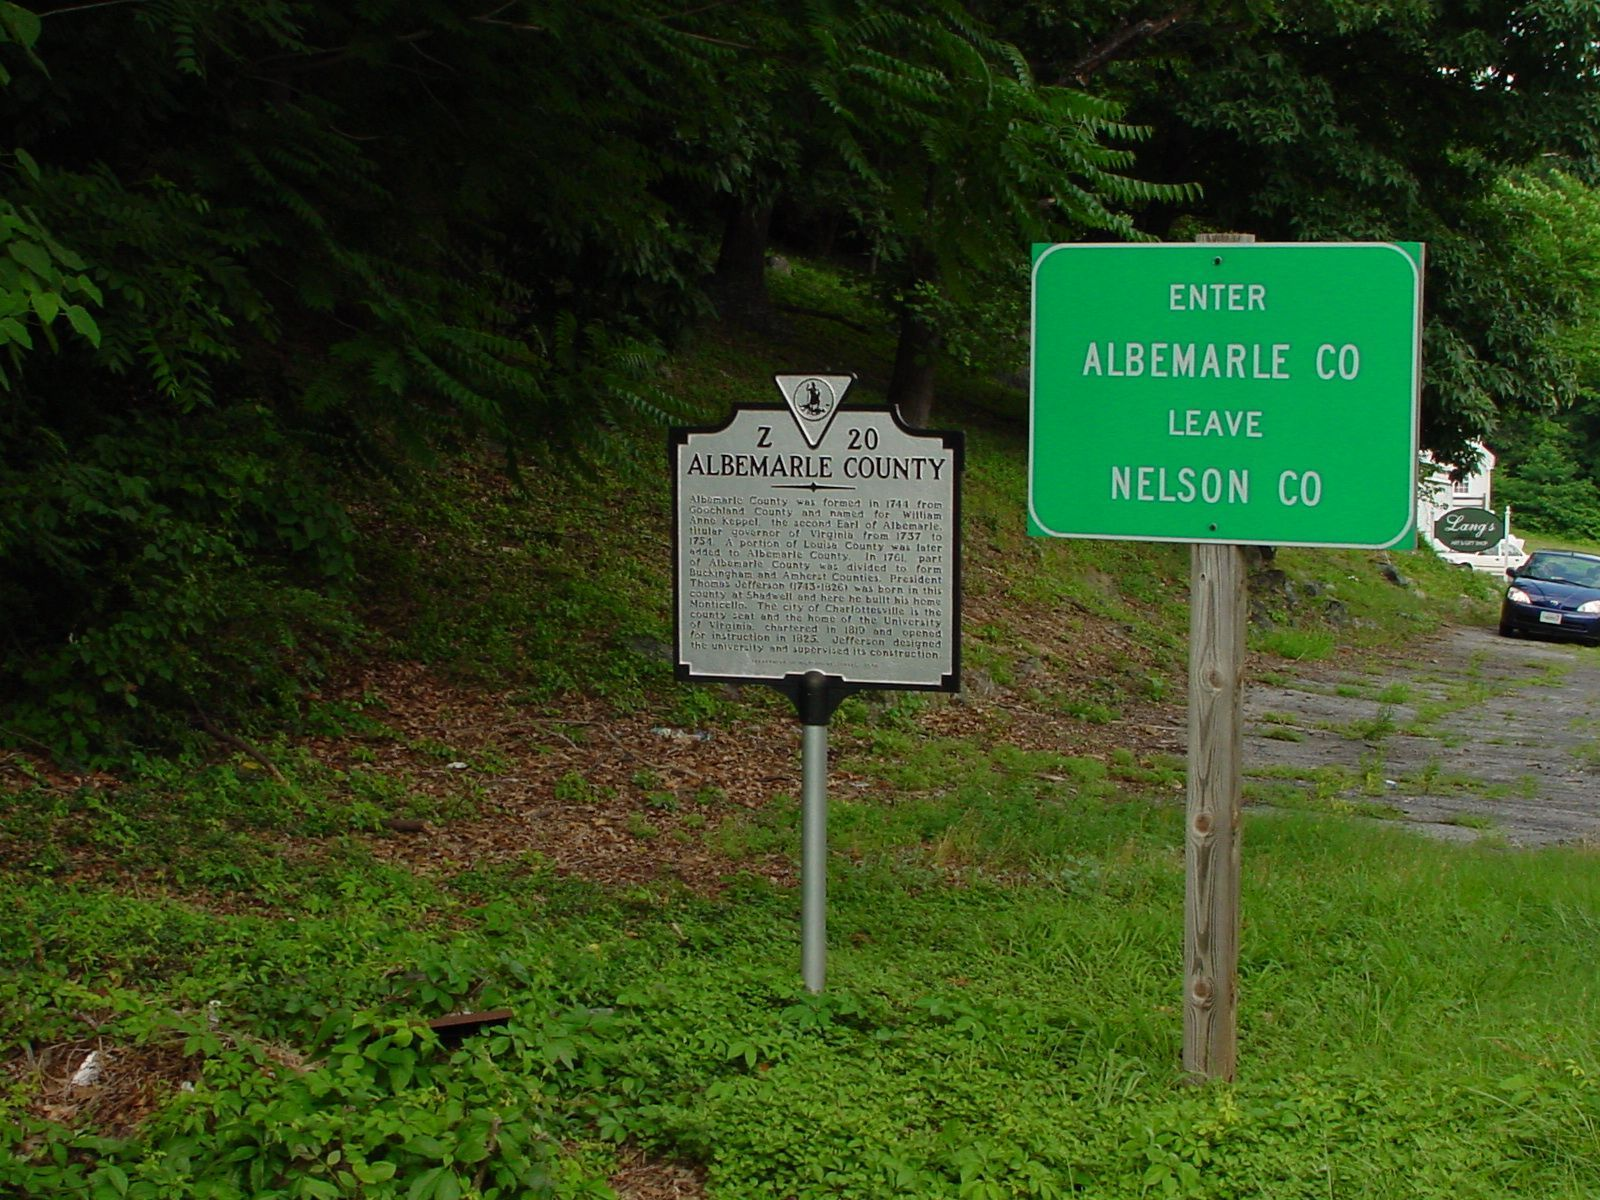 Nelson County / Albemarle County Marker